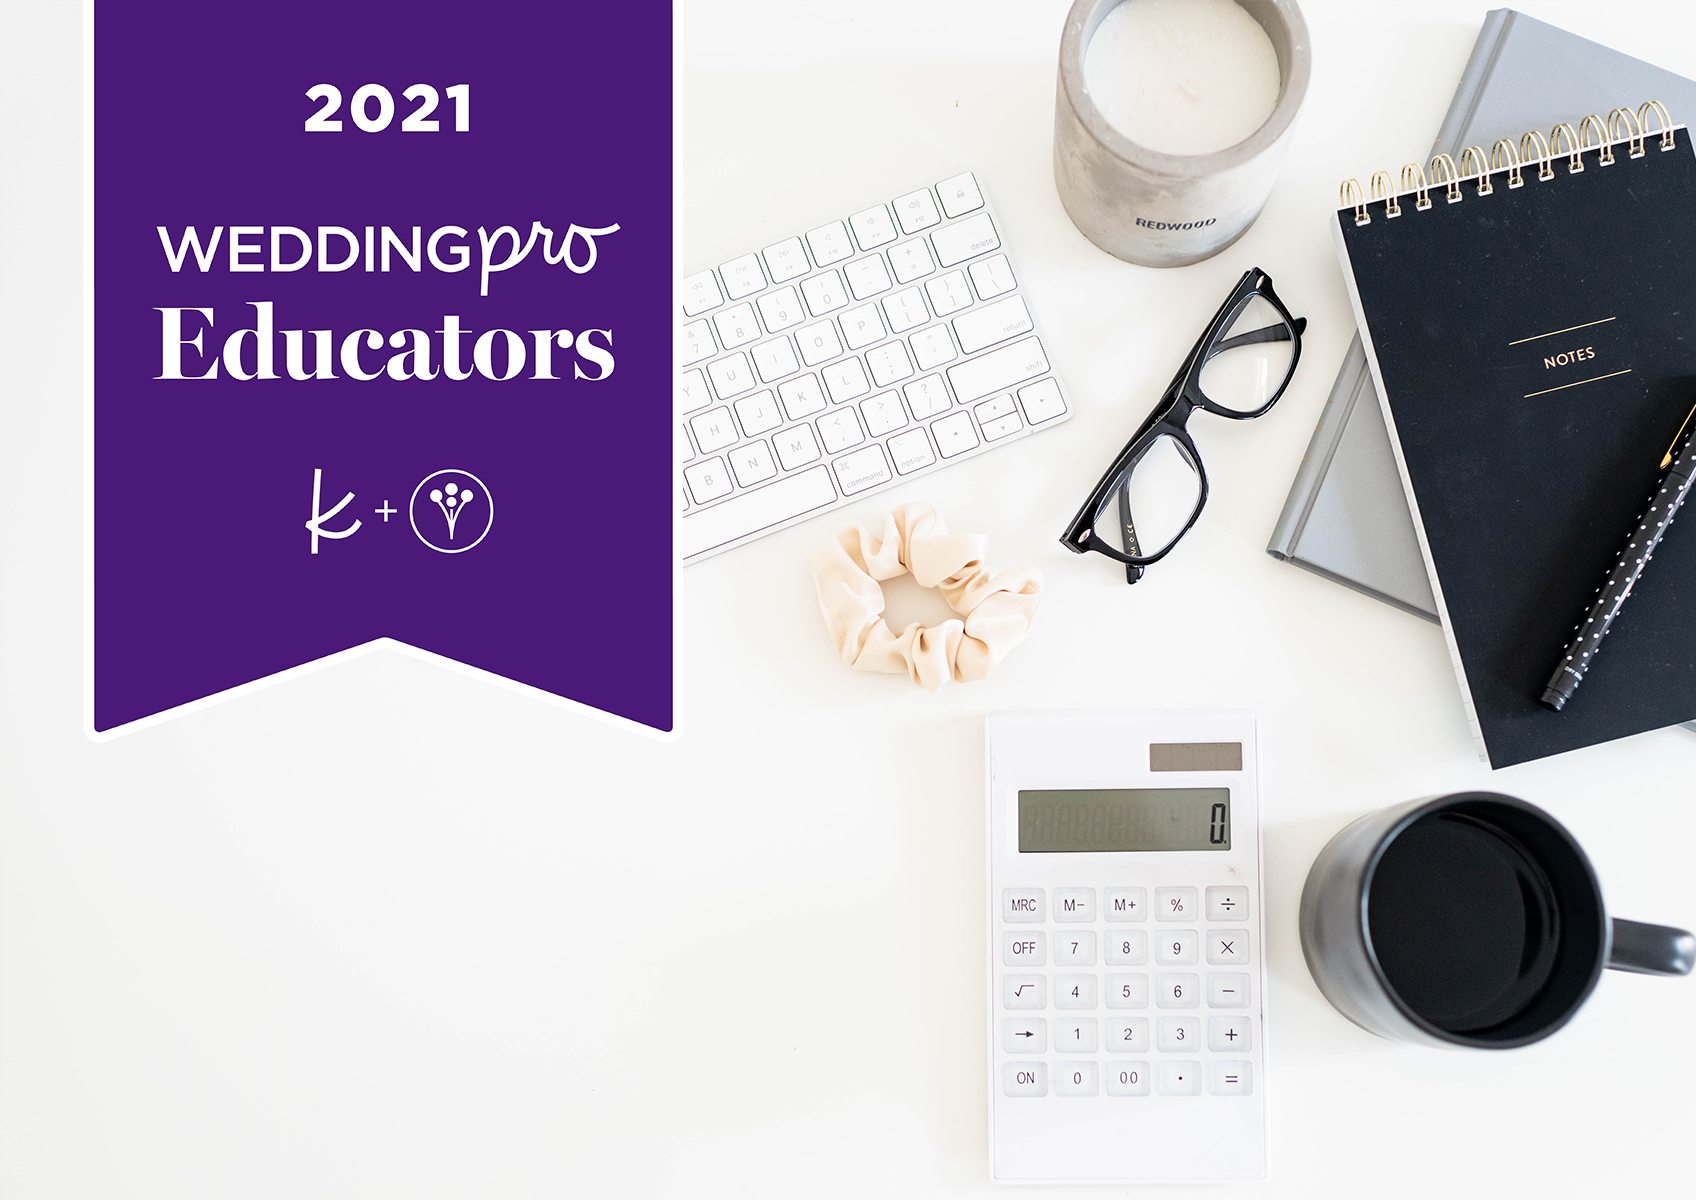 Meet the 2021 WeddingPro Educators